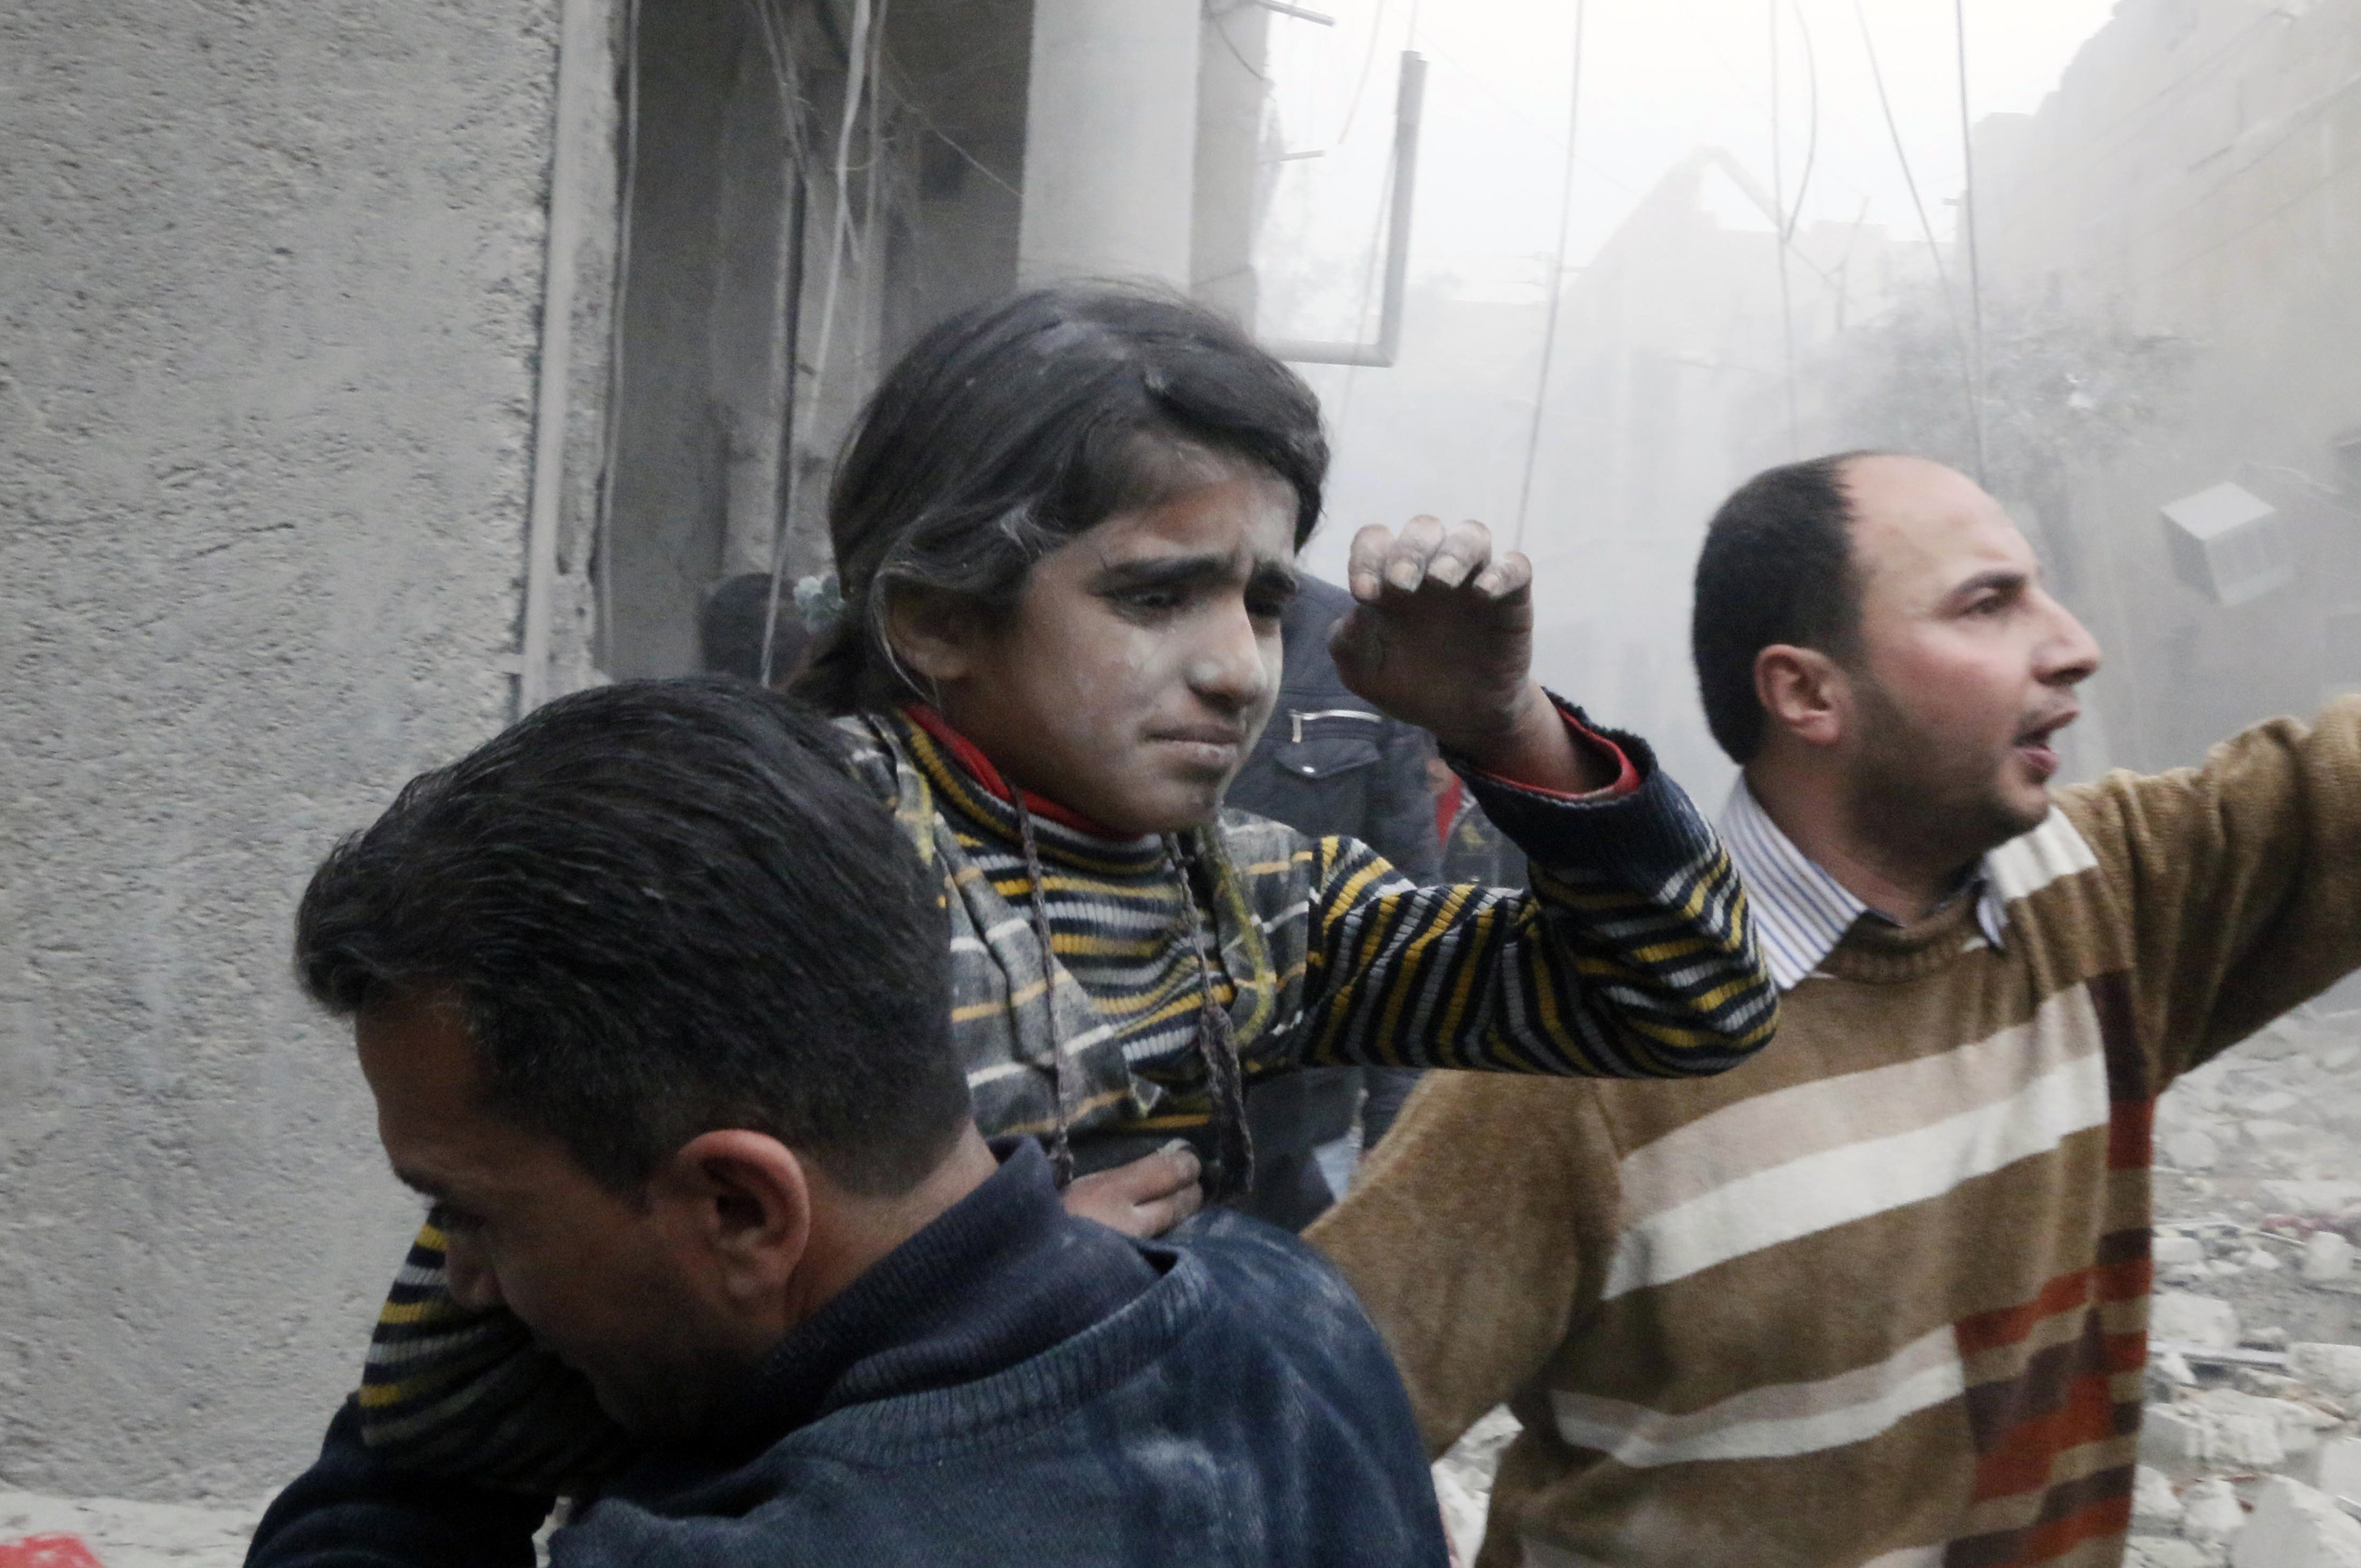 A Syrian girl is rescued from a damaged building after both of her parents died in what activists said was a government air strike.